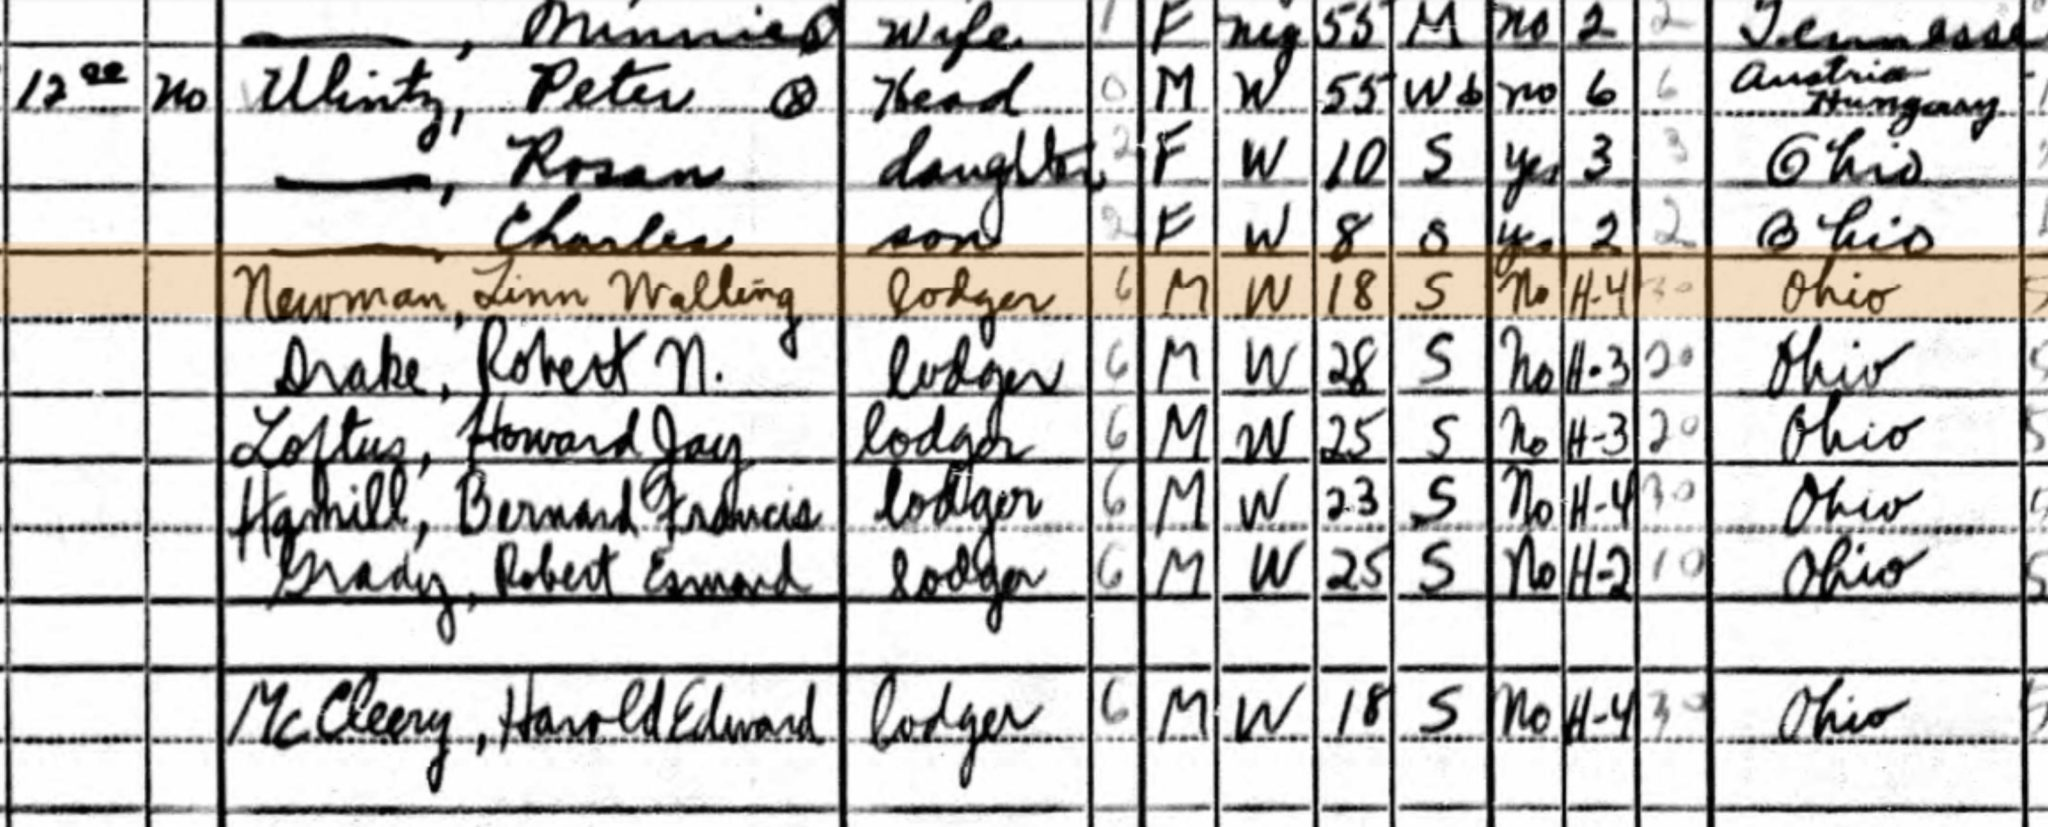 Lodgers in 1940 Census